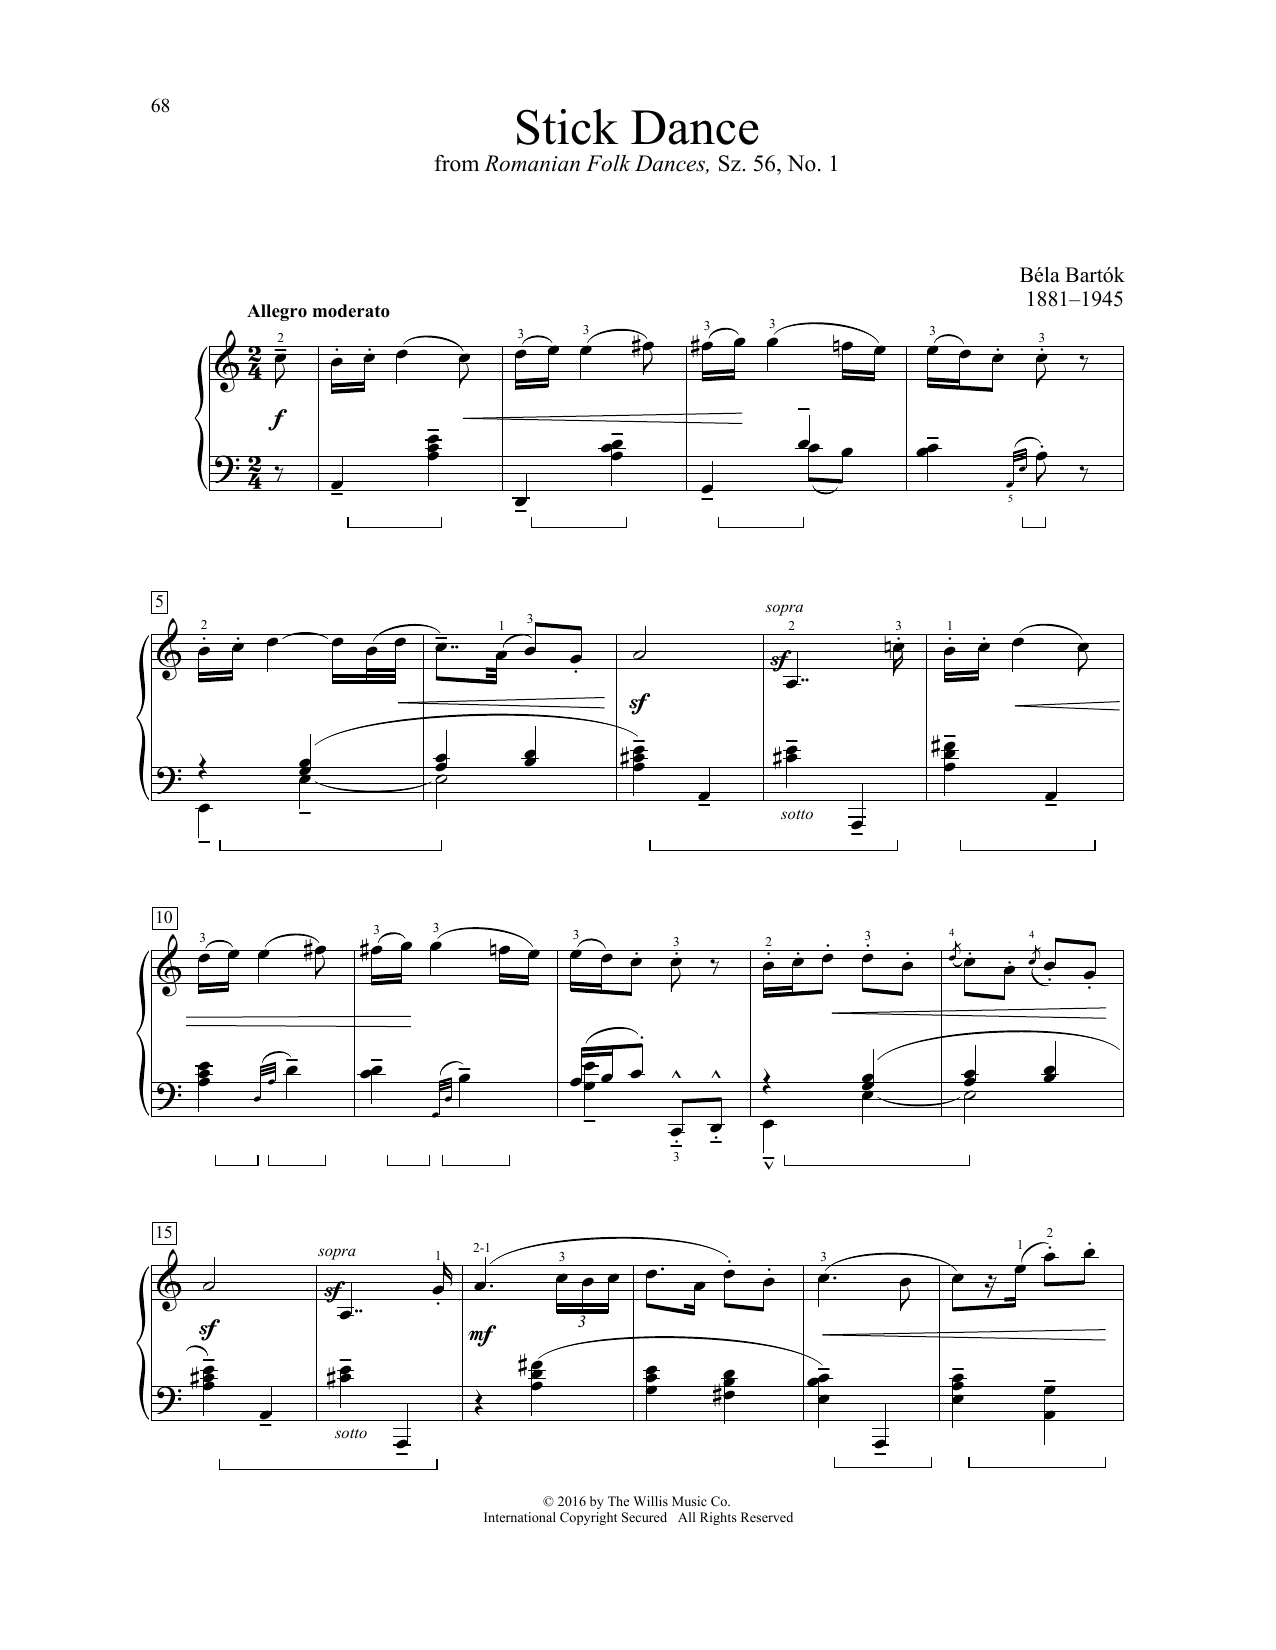 Bela Bartok Stick Dance sheet music notes and chords. Download Printable PDF.